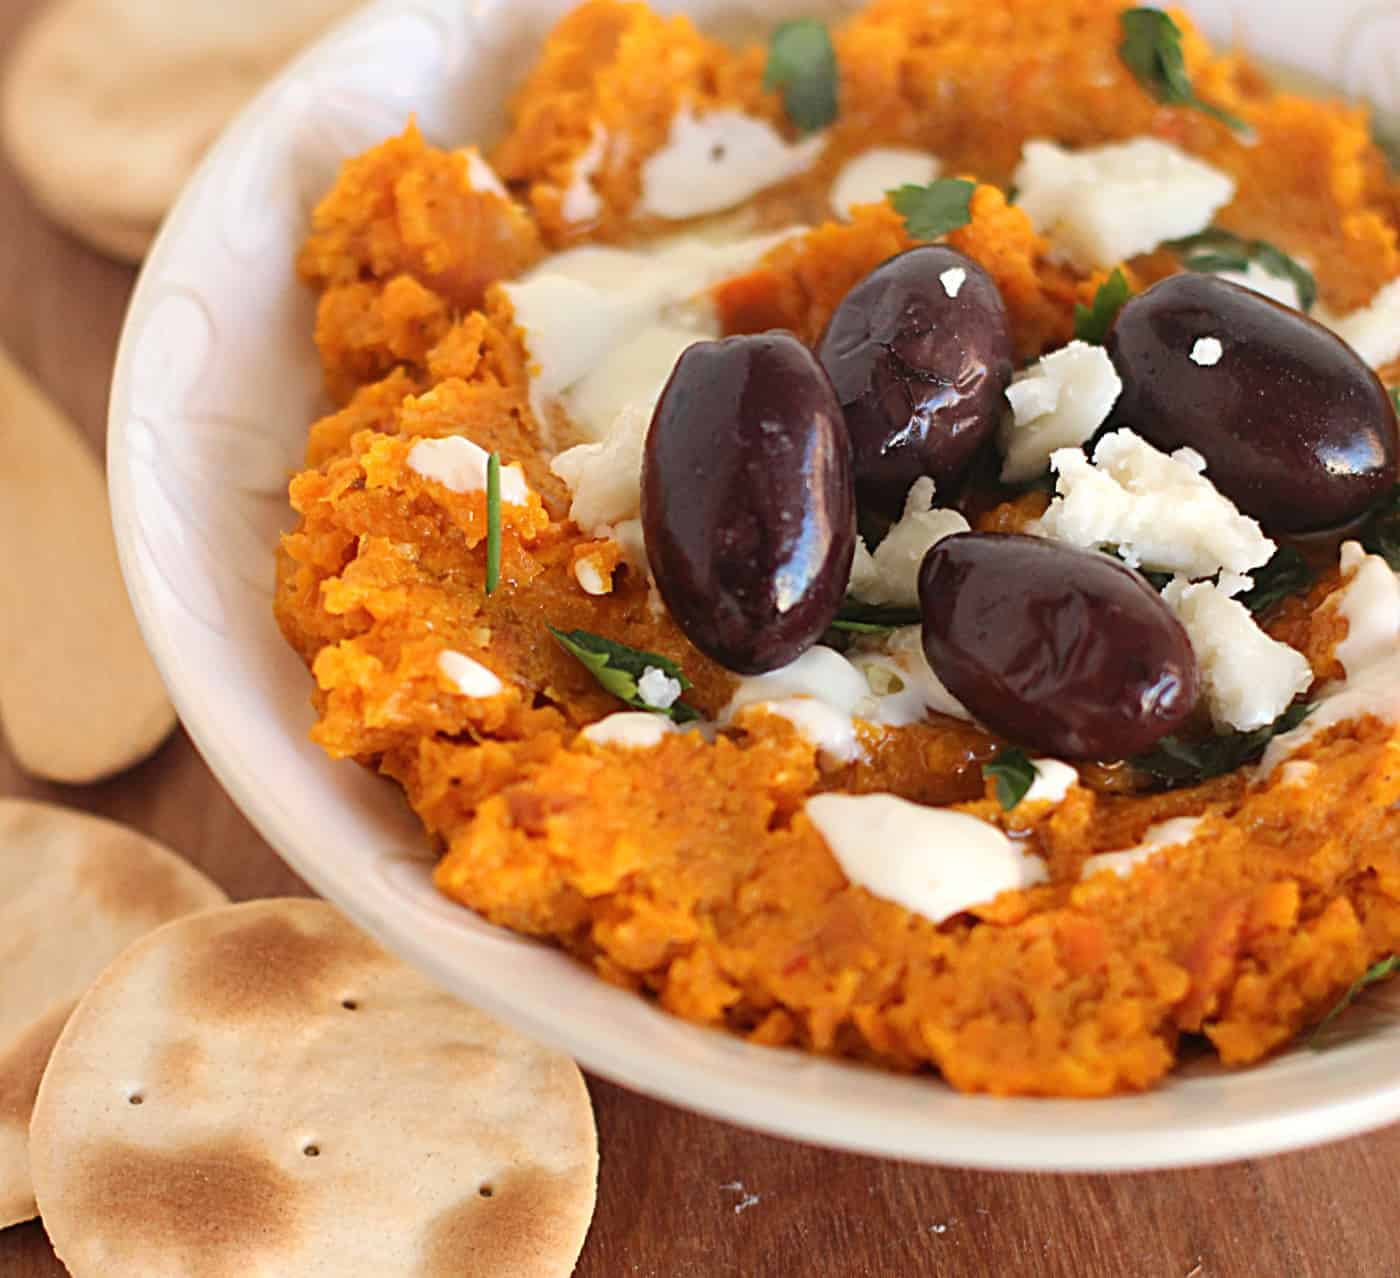 White Bowl of carrot dip, black olives, goat cheese and crackers